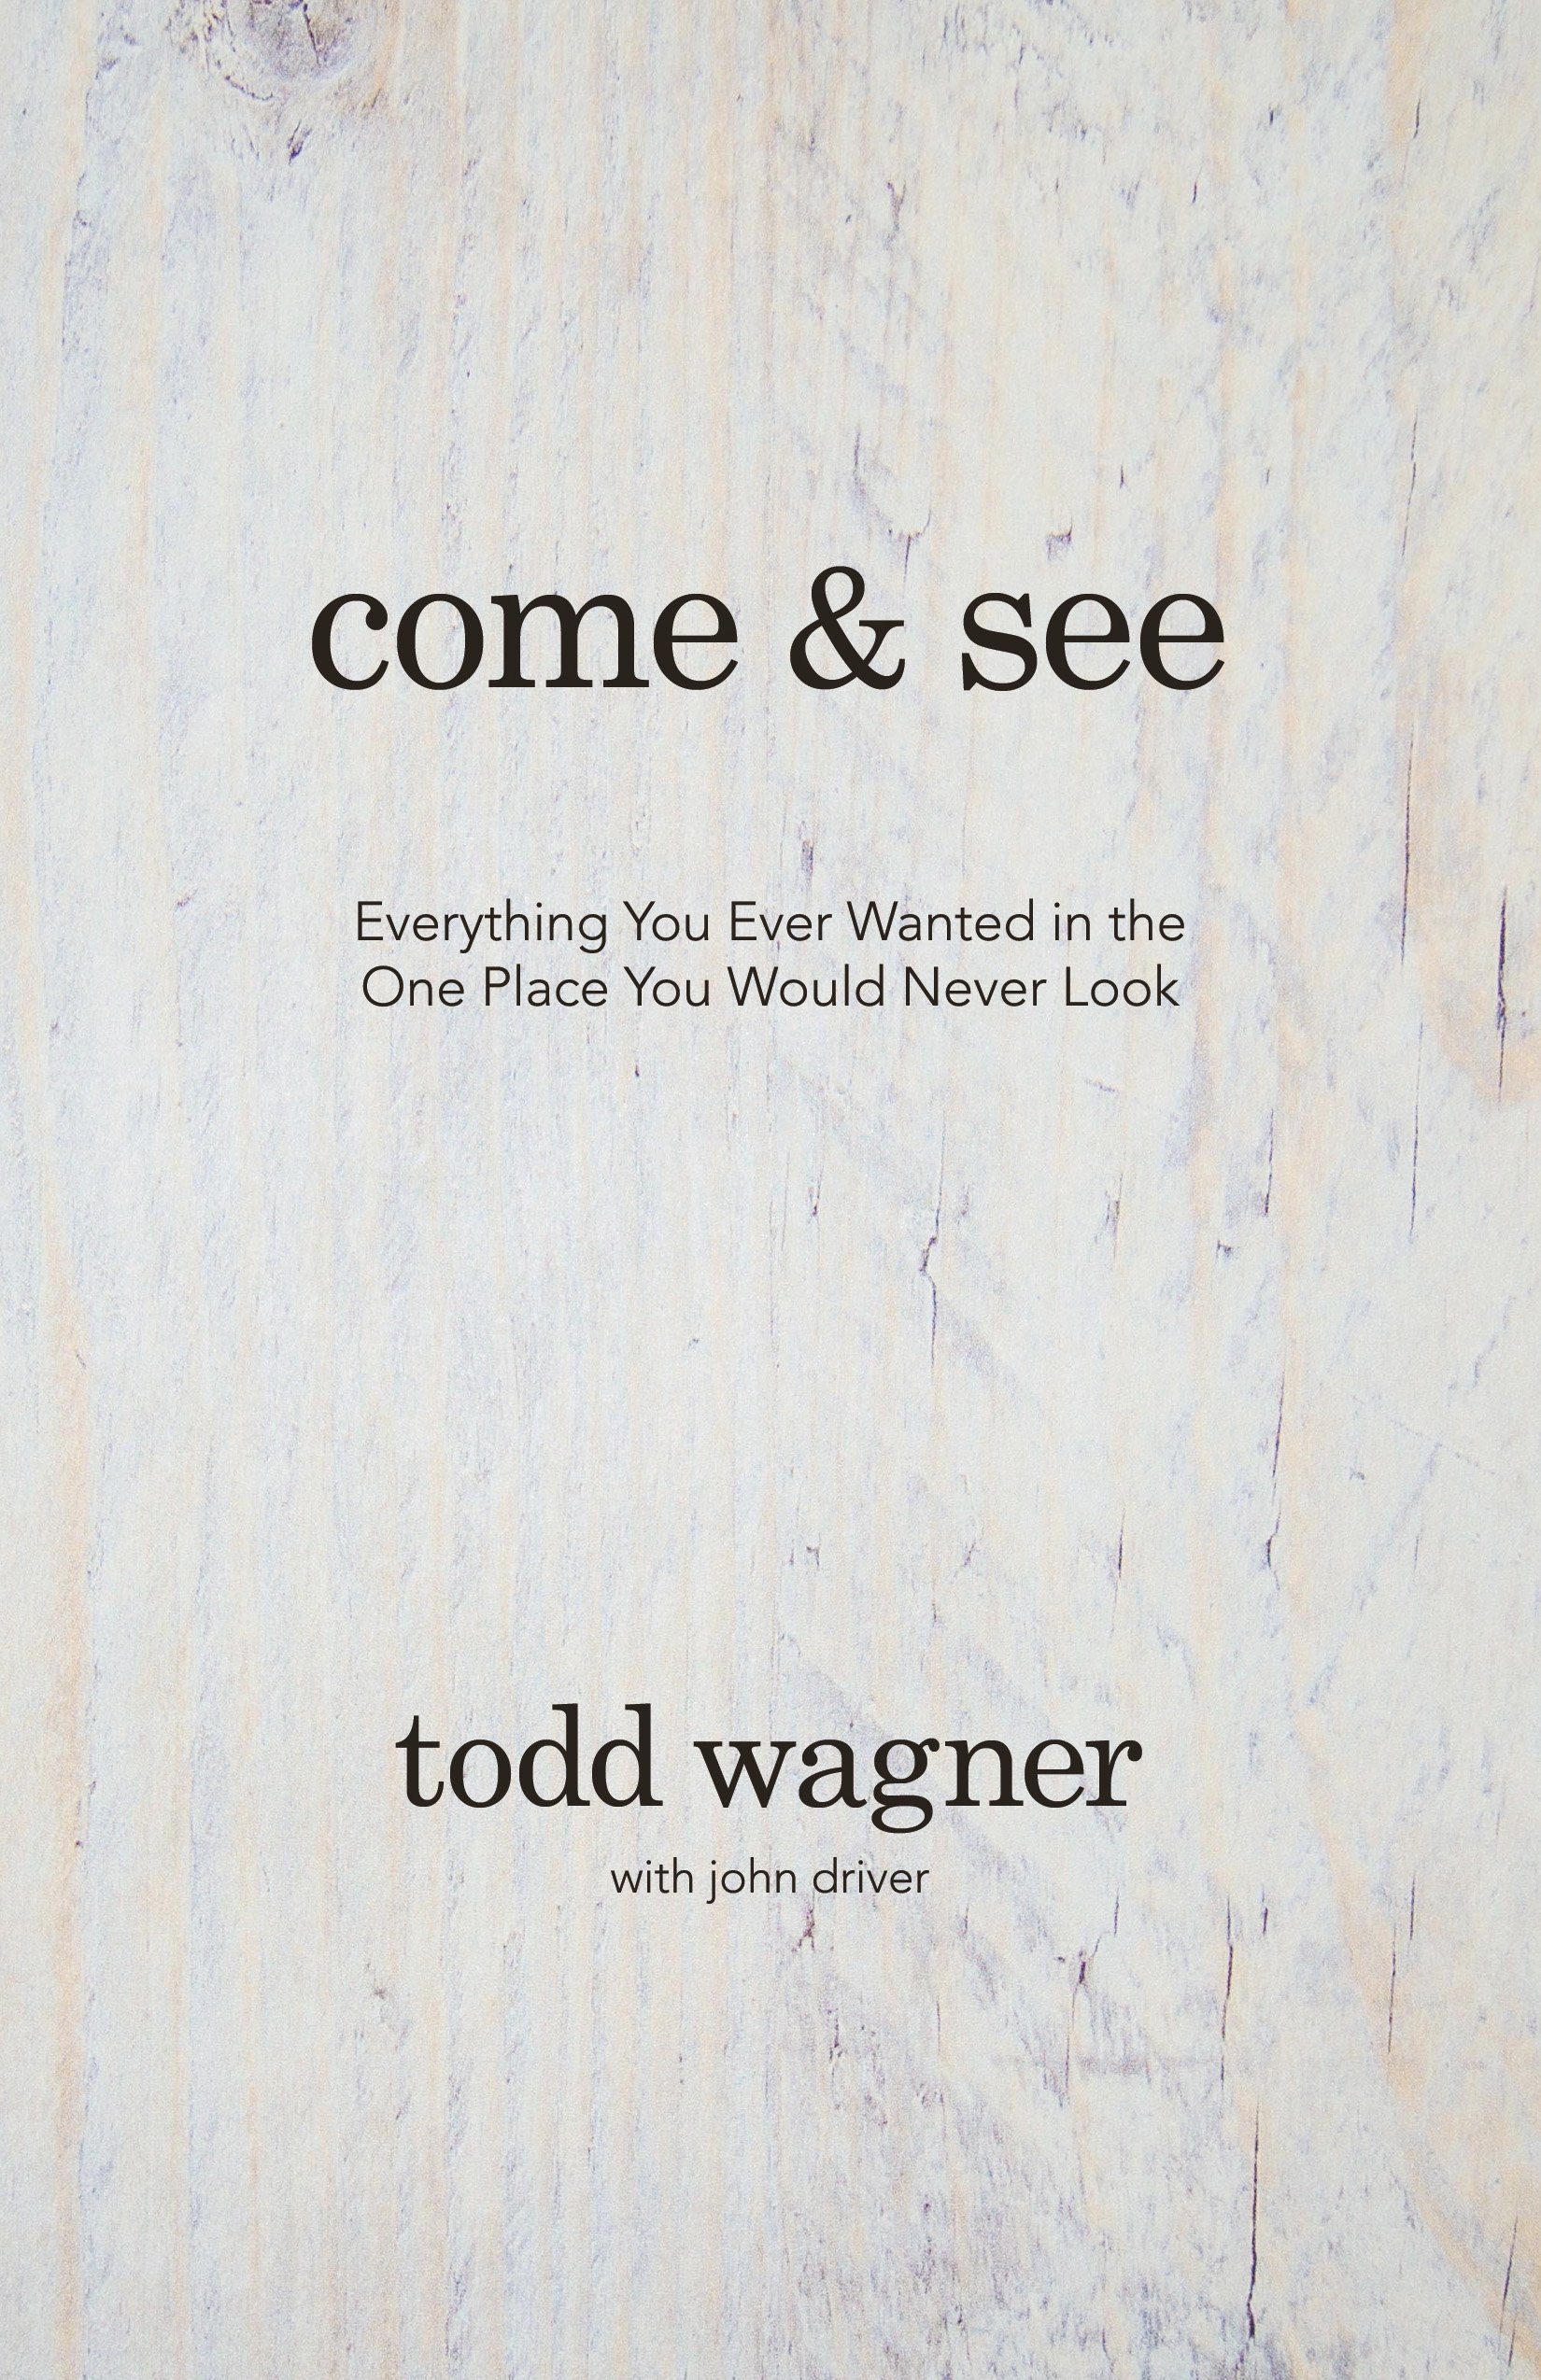 come and see everything you ever wanted in the one place you come and see everything you ever wanted in the one place you would never look todd wagner john driver 9780781414883 amazon com books